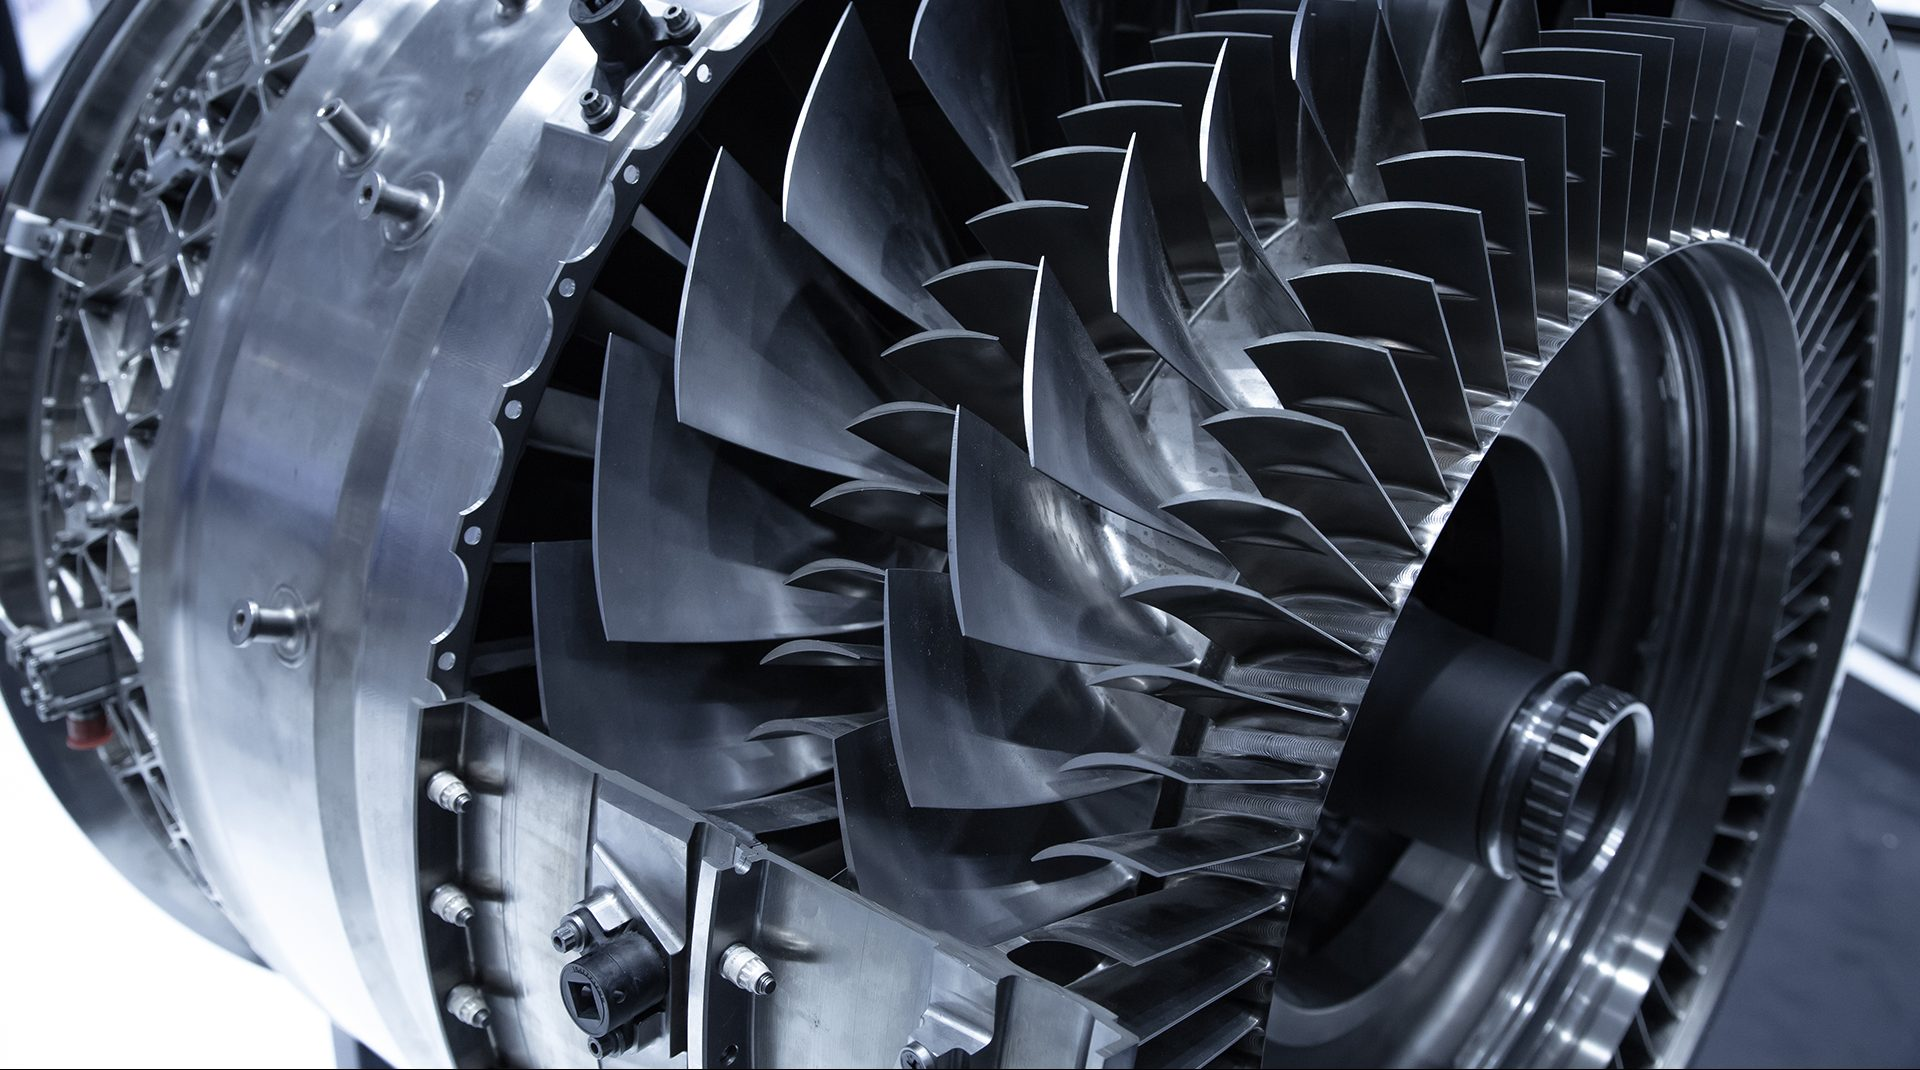 Turbine Engine - Aerospace Manufacturing